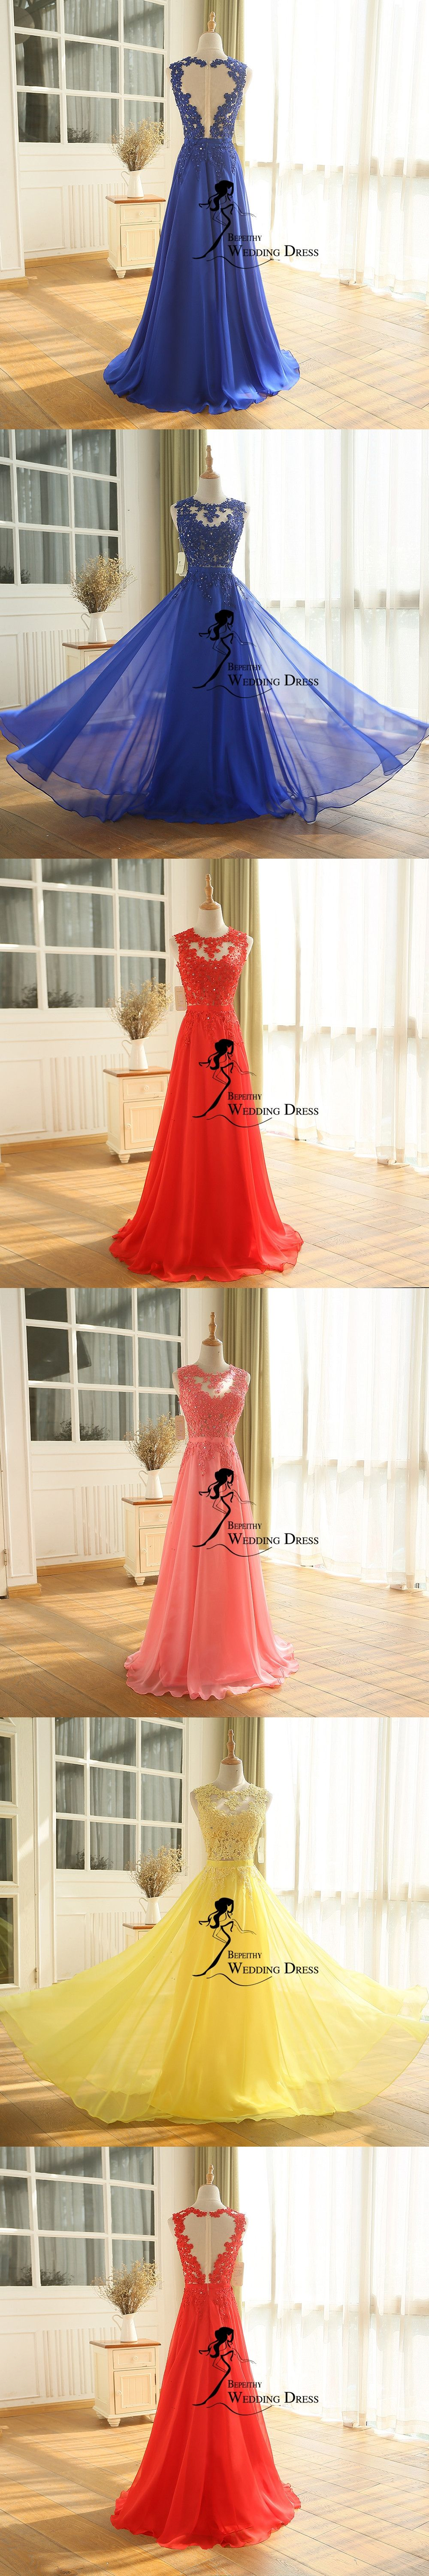 Bepeithy vestido de festa formal evening dress gown chiffon